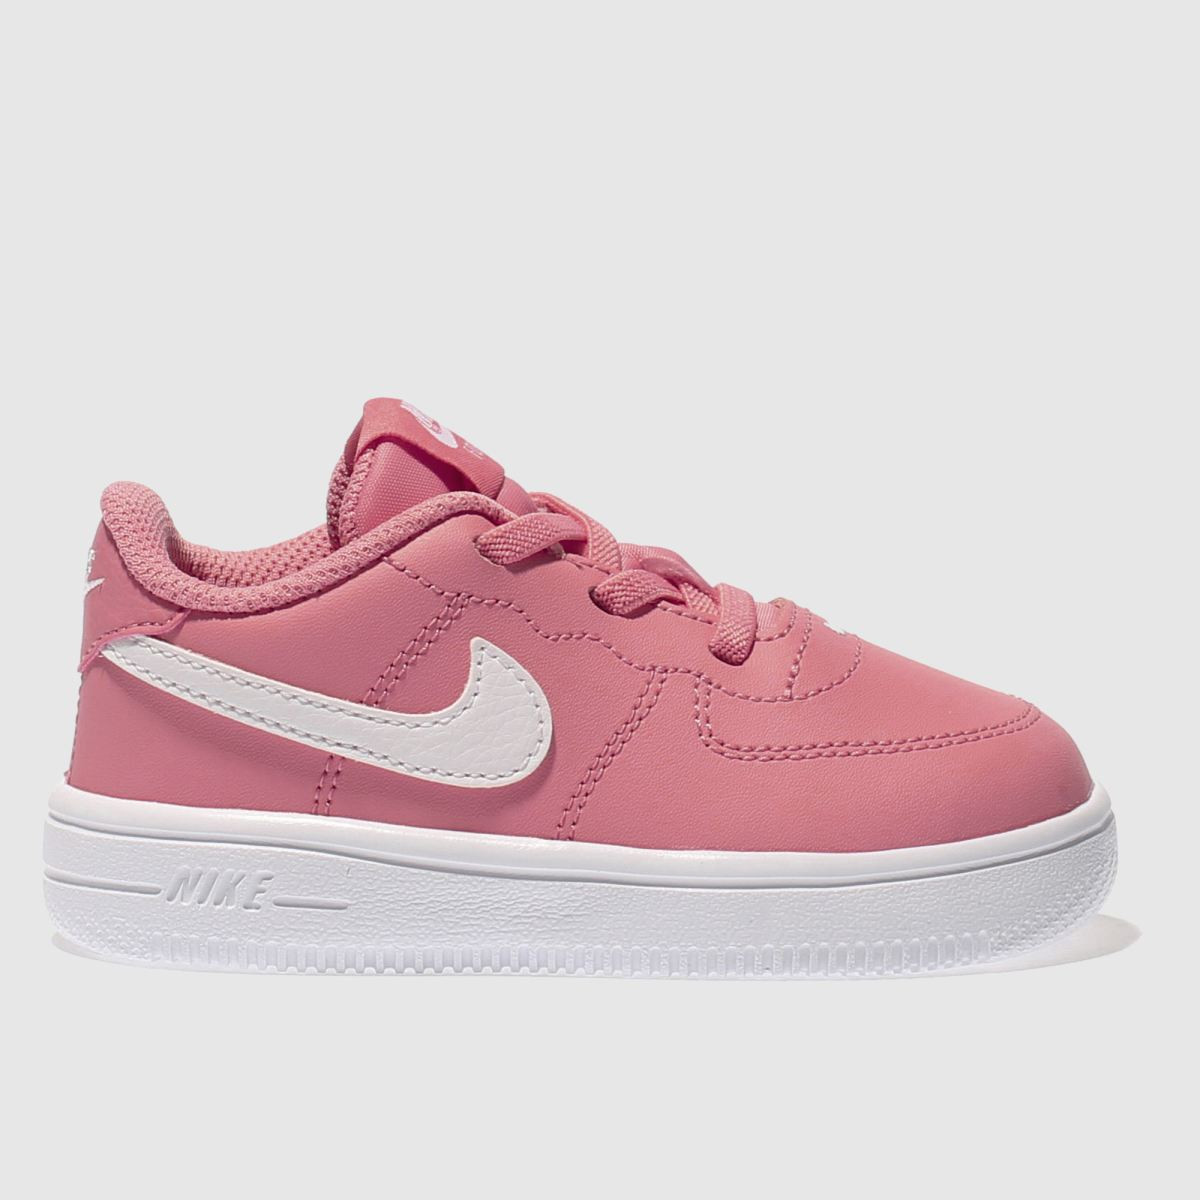 nike pink force 1 18 bt Girls Toddler Trainers